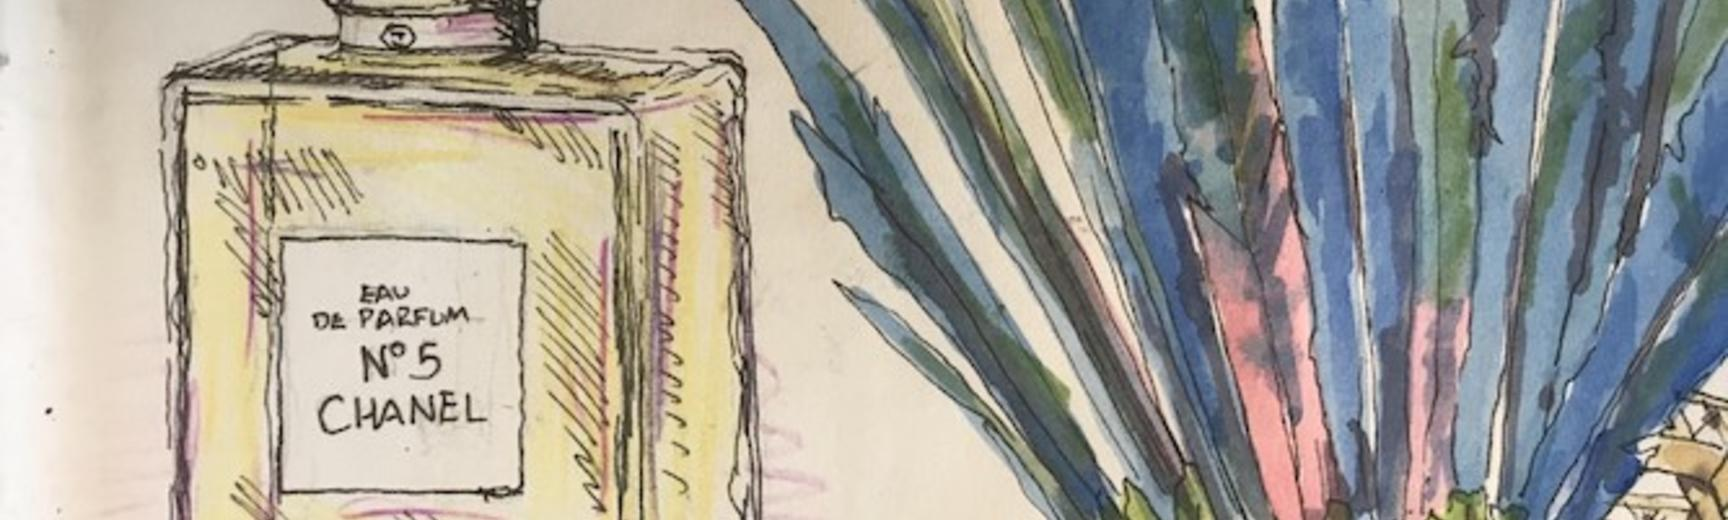 Image of bottle from example sketchbook